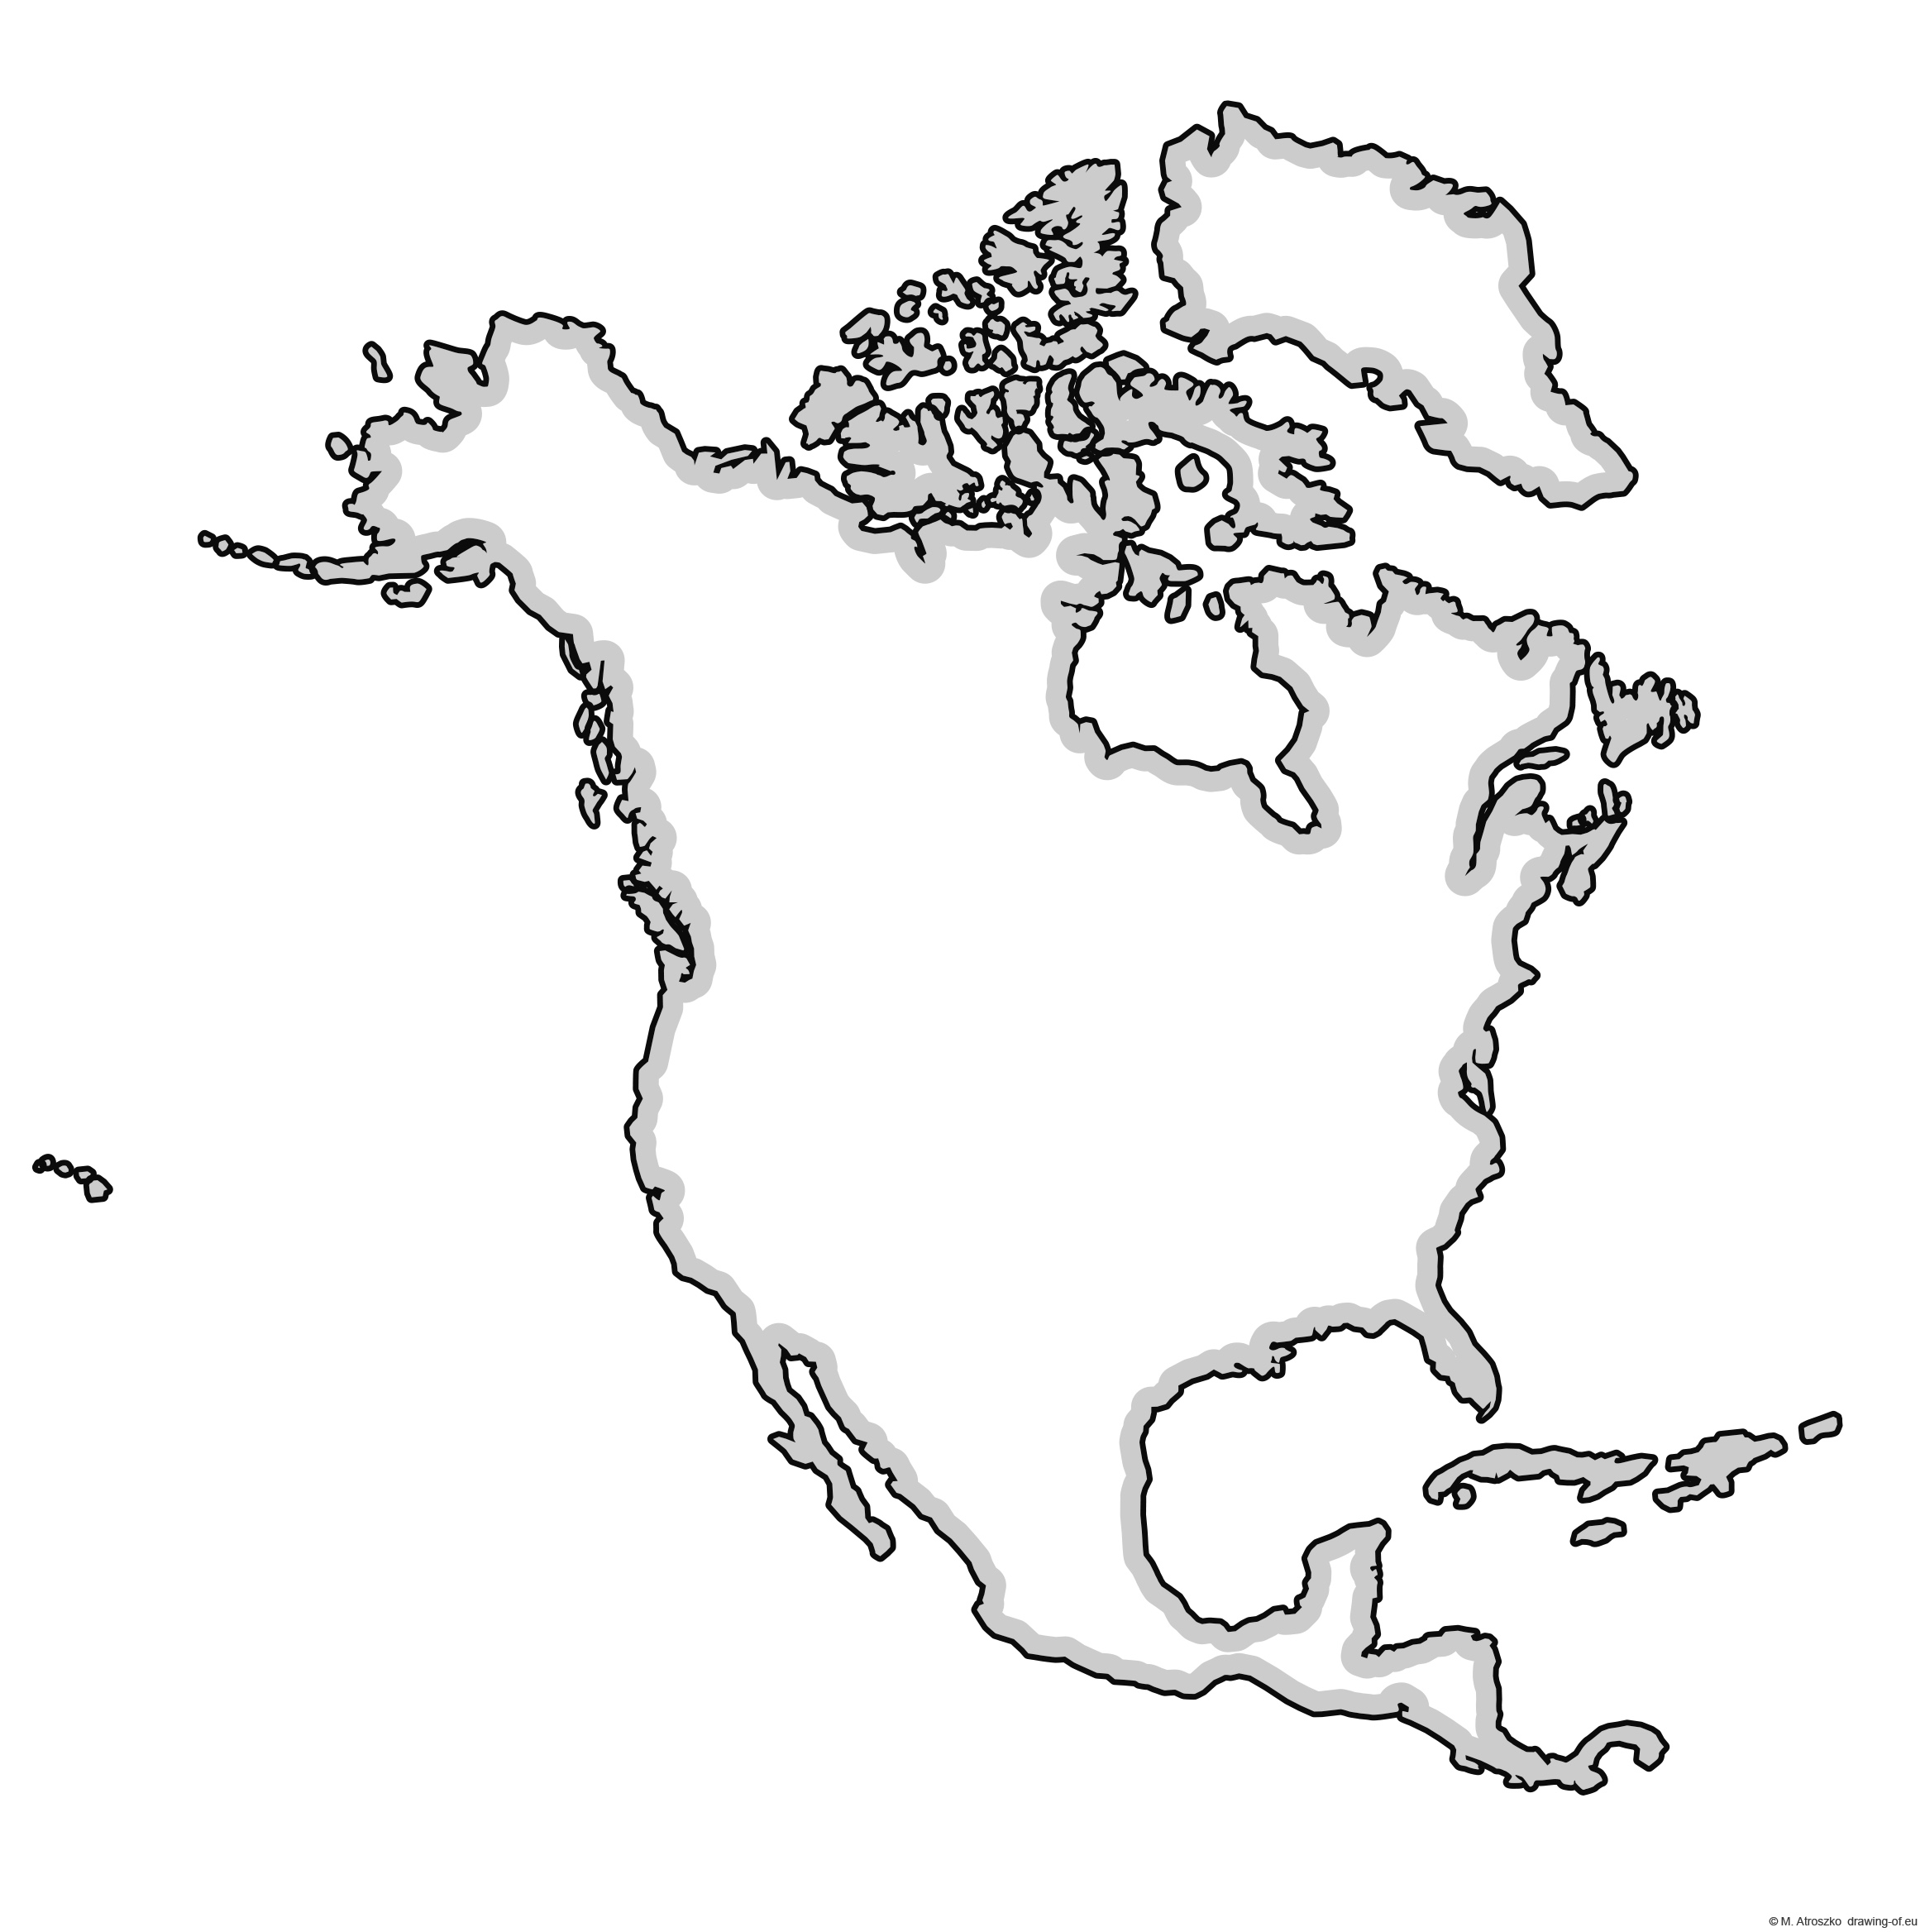 North America map for printing